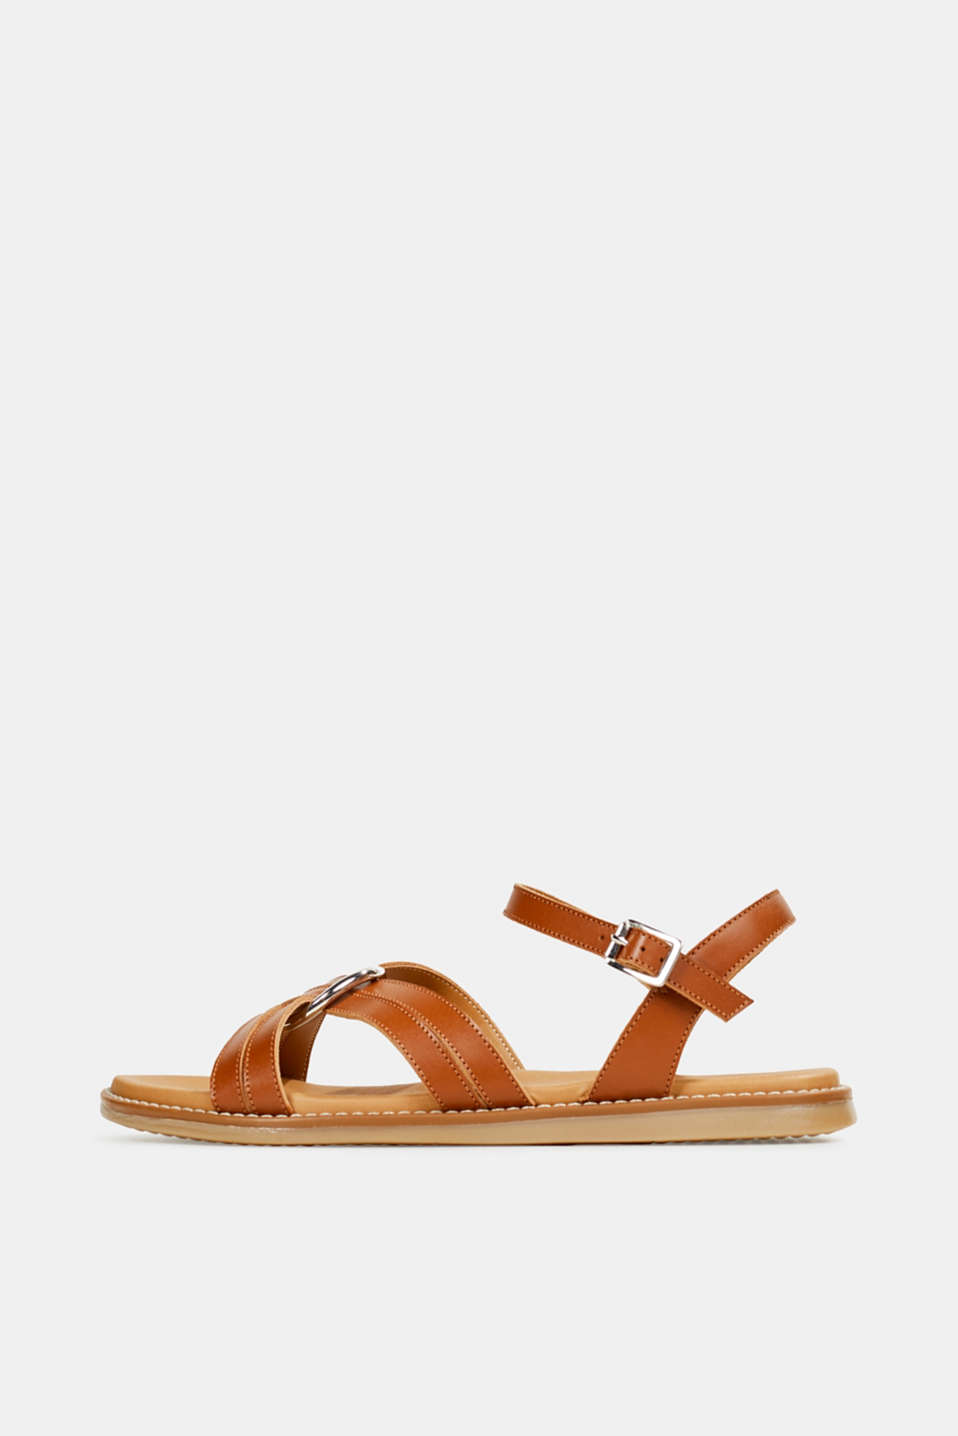 Sandals with crossed-over straps, CARAMEL, detail image number 0